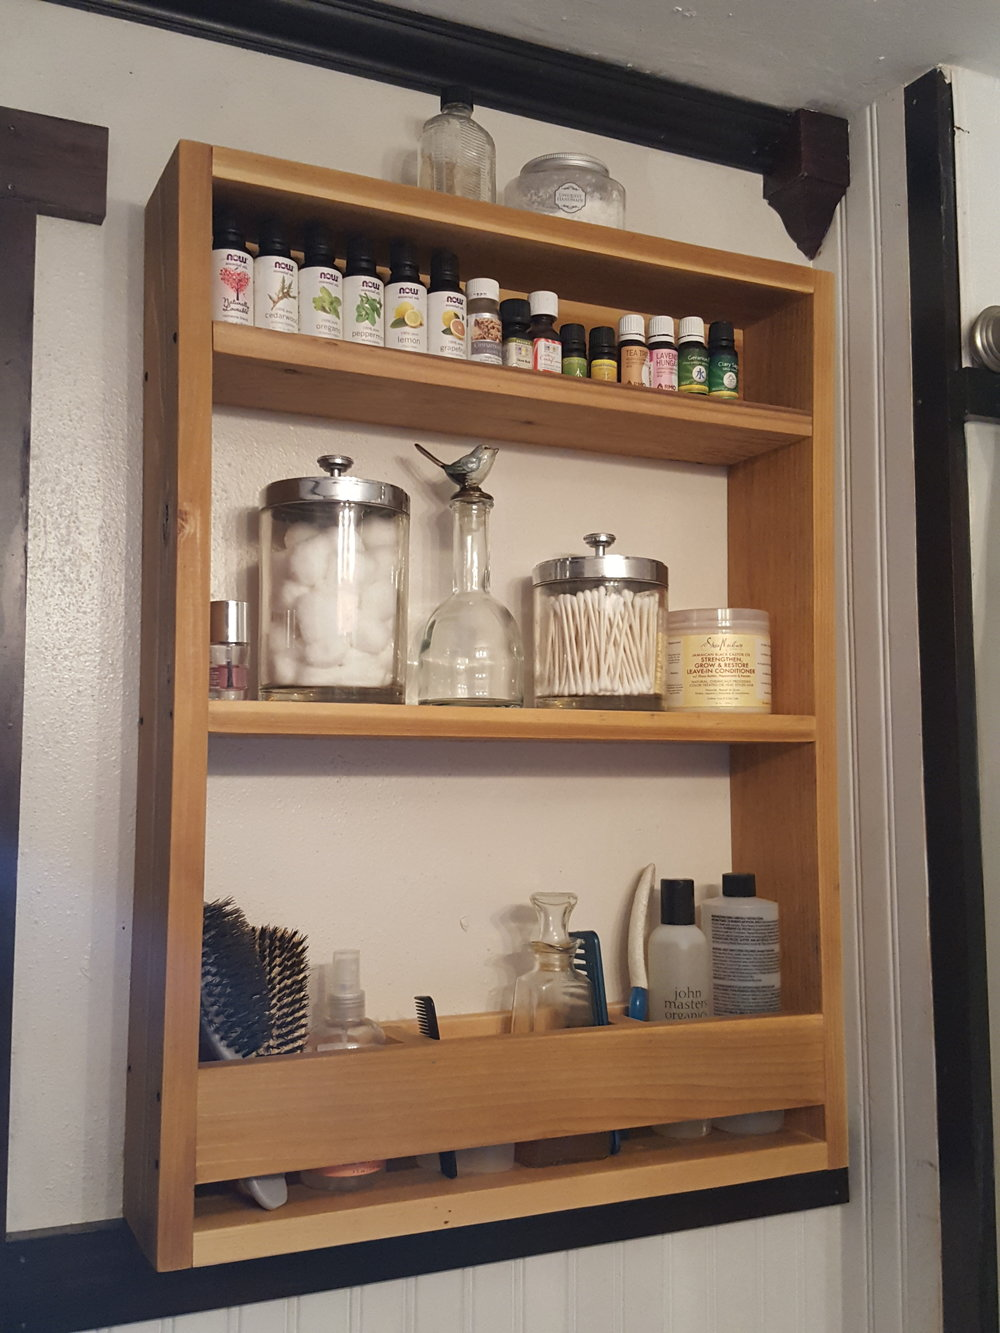 The 3rd shelf of my cedar bathroom storage is the perfect spot for my essential oils!